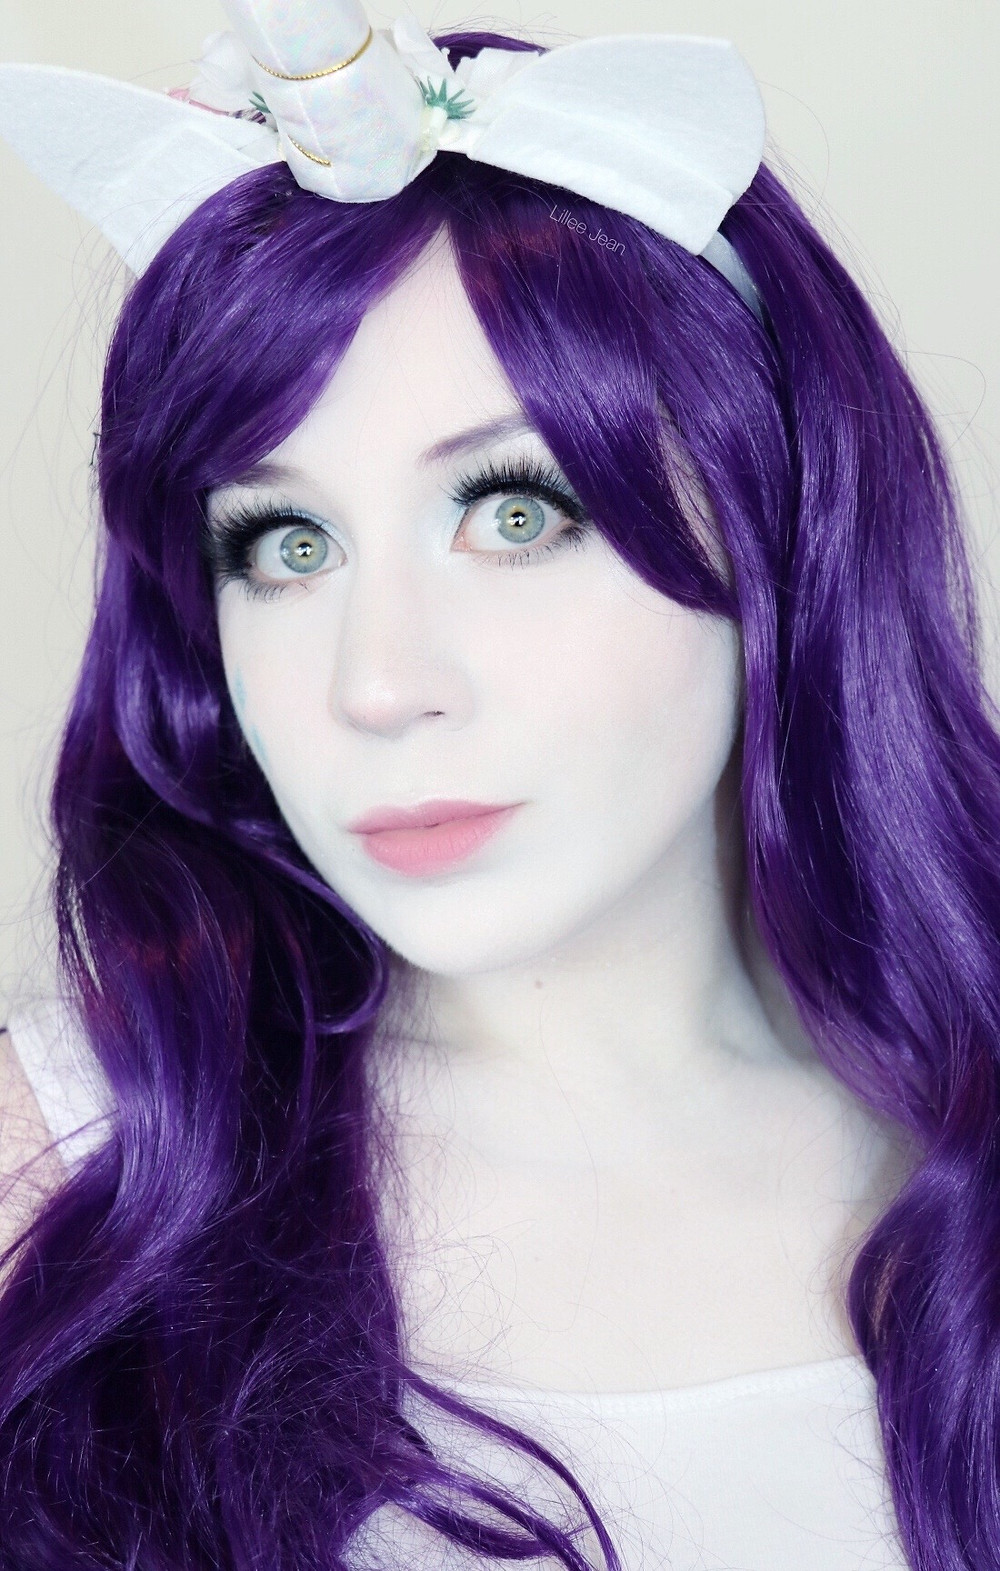 RARITY My Little Pony Cosplay Makeup Tutorial Halloween 2020 | Equestria Girls | Lillee JeanRARITY My Little Pony Cosplay Makeup Tutorial Halloween 2020 | Equestria Girls | Lillee Jean